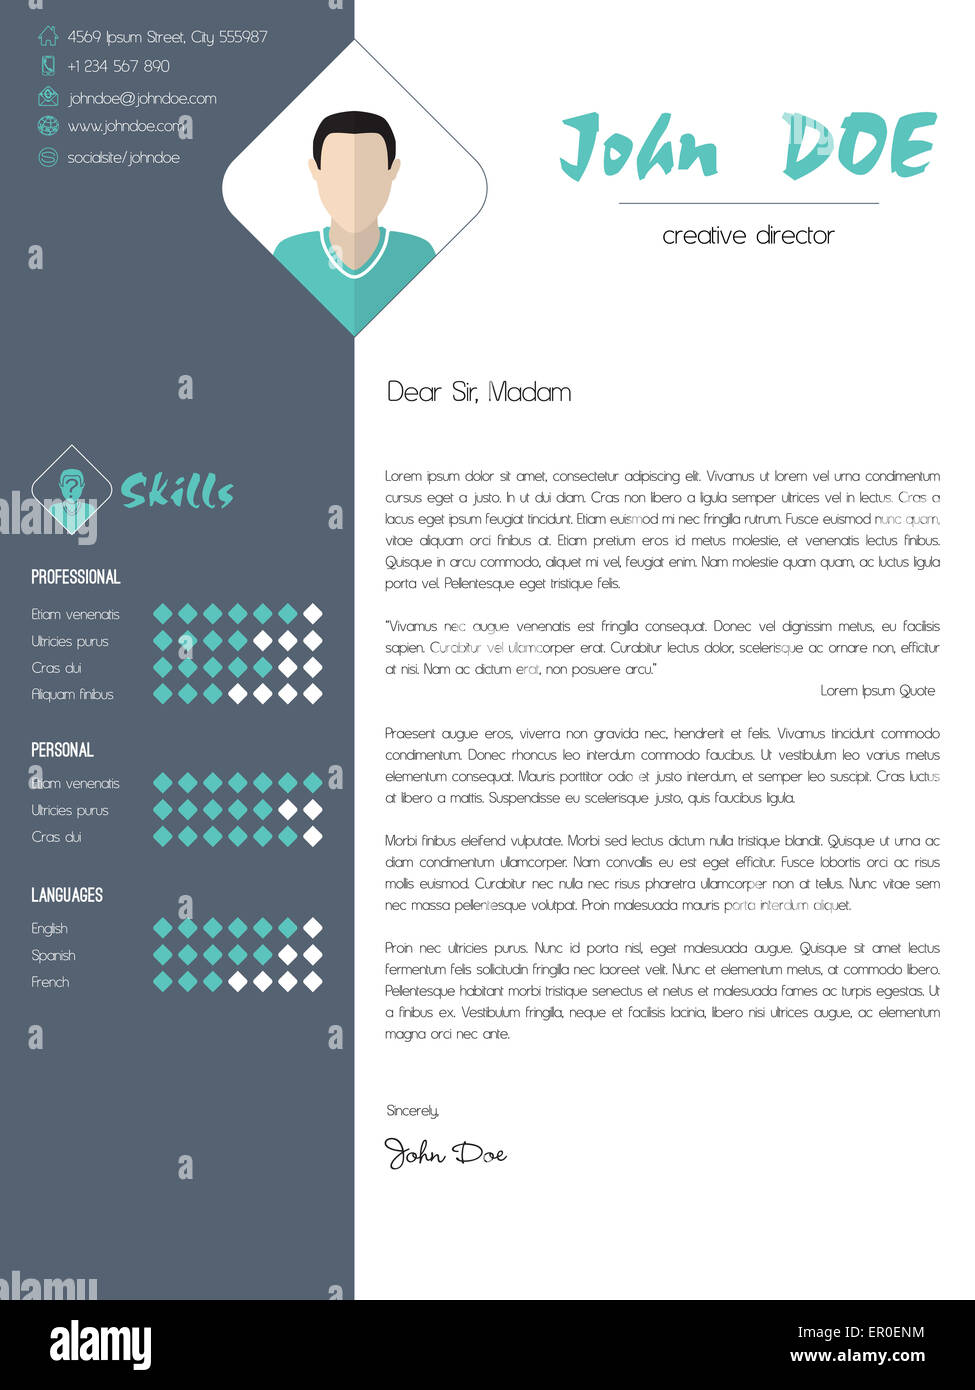 Modern Cover Letter Design With Elements